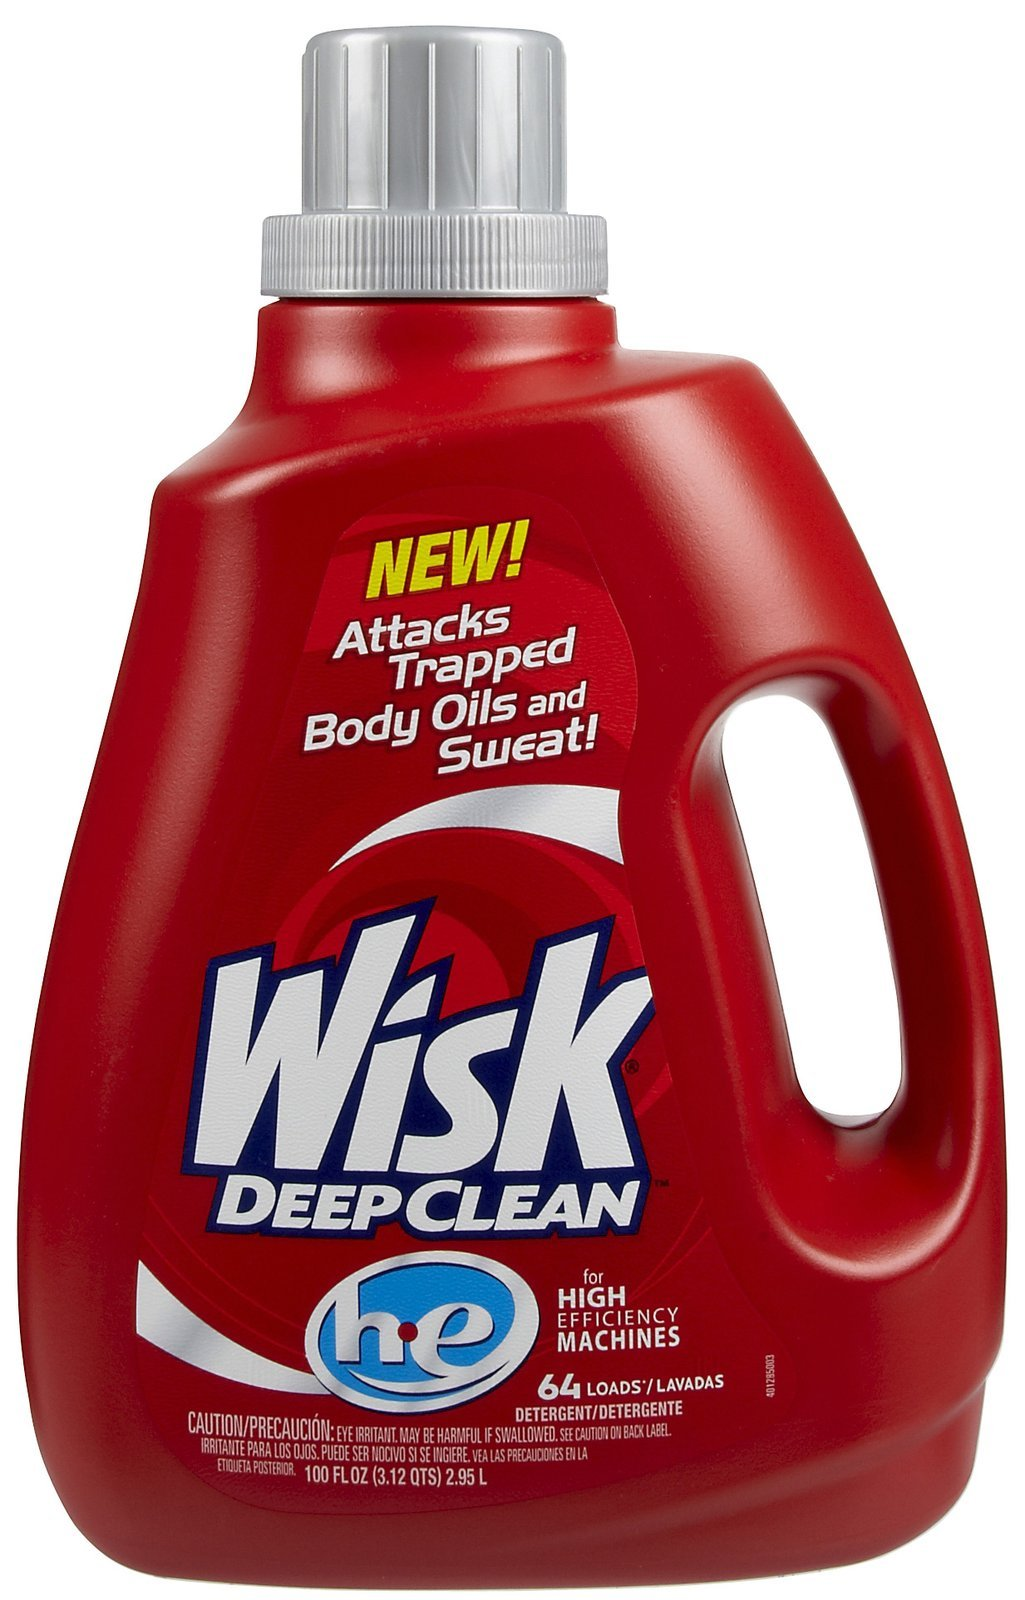 Wisk Deep Clean Laundry Detergent for HE Washing Machines (100-Ounce, 4-Pack)